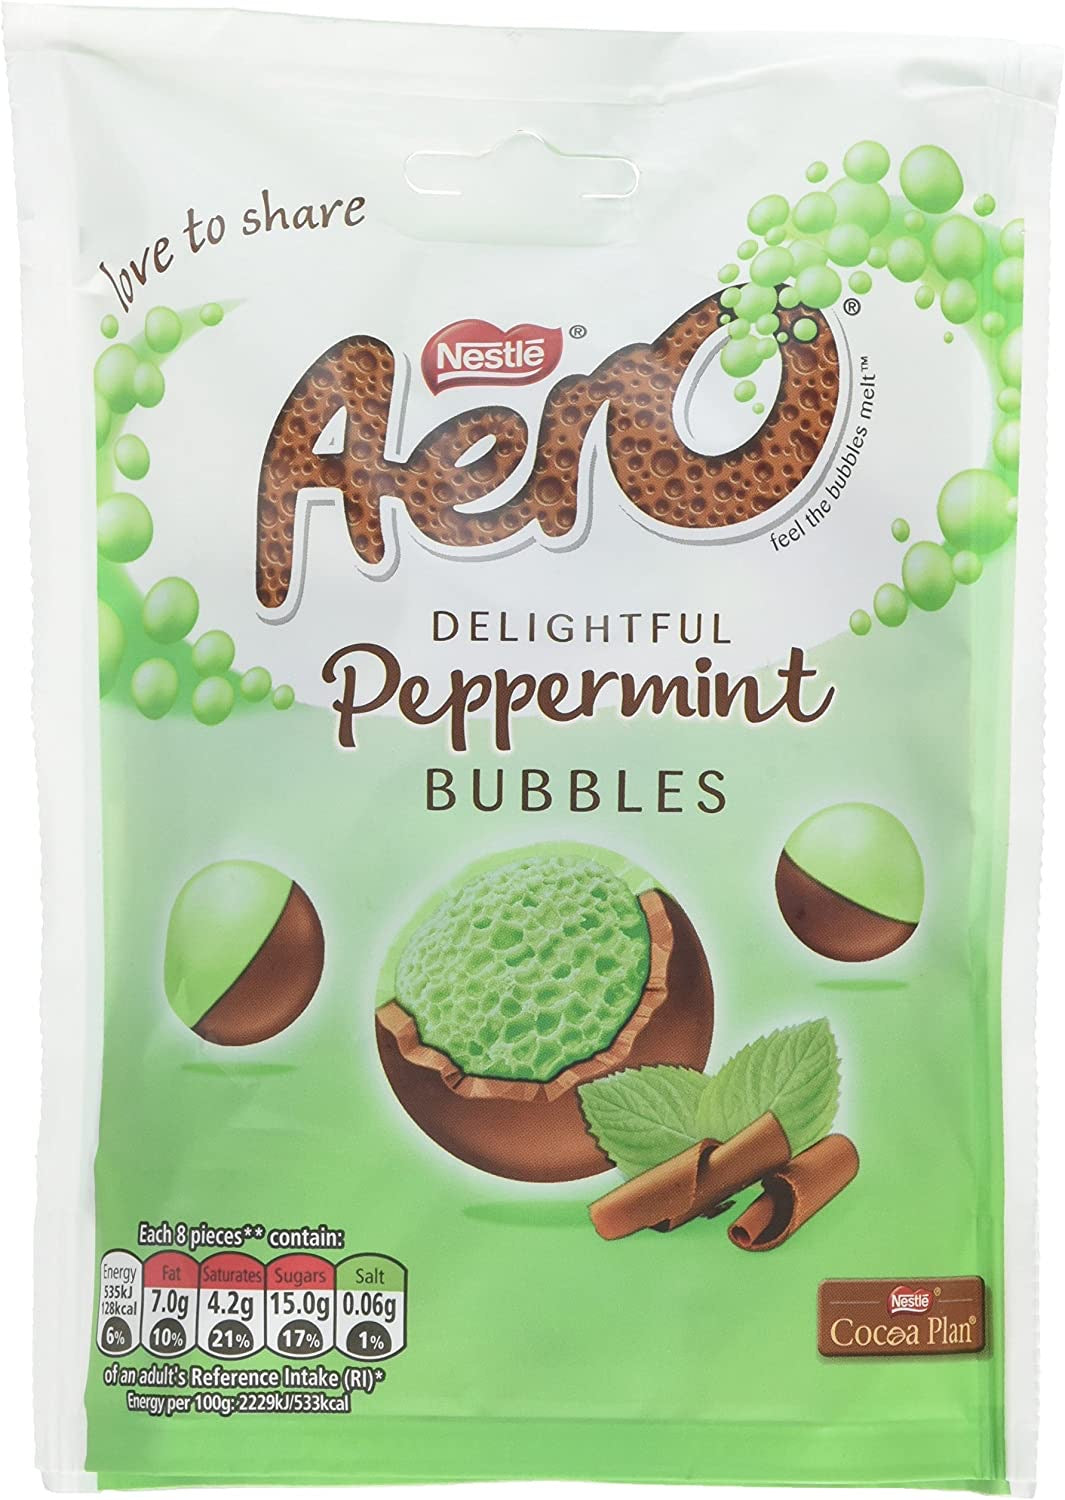 Aero Delightful Peppermint Bubbles